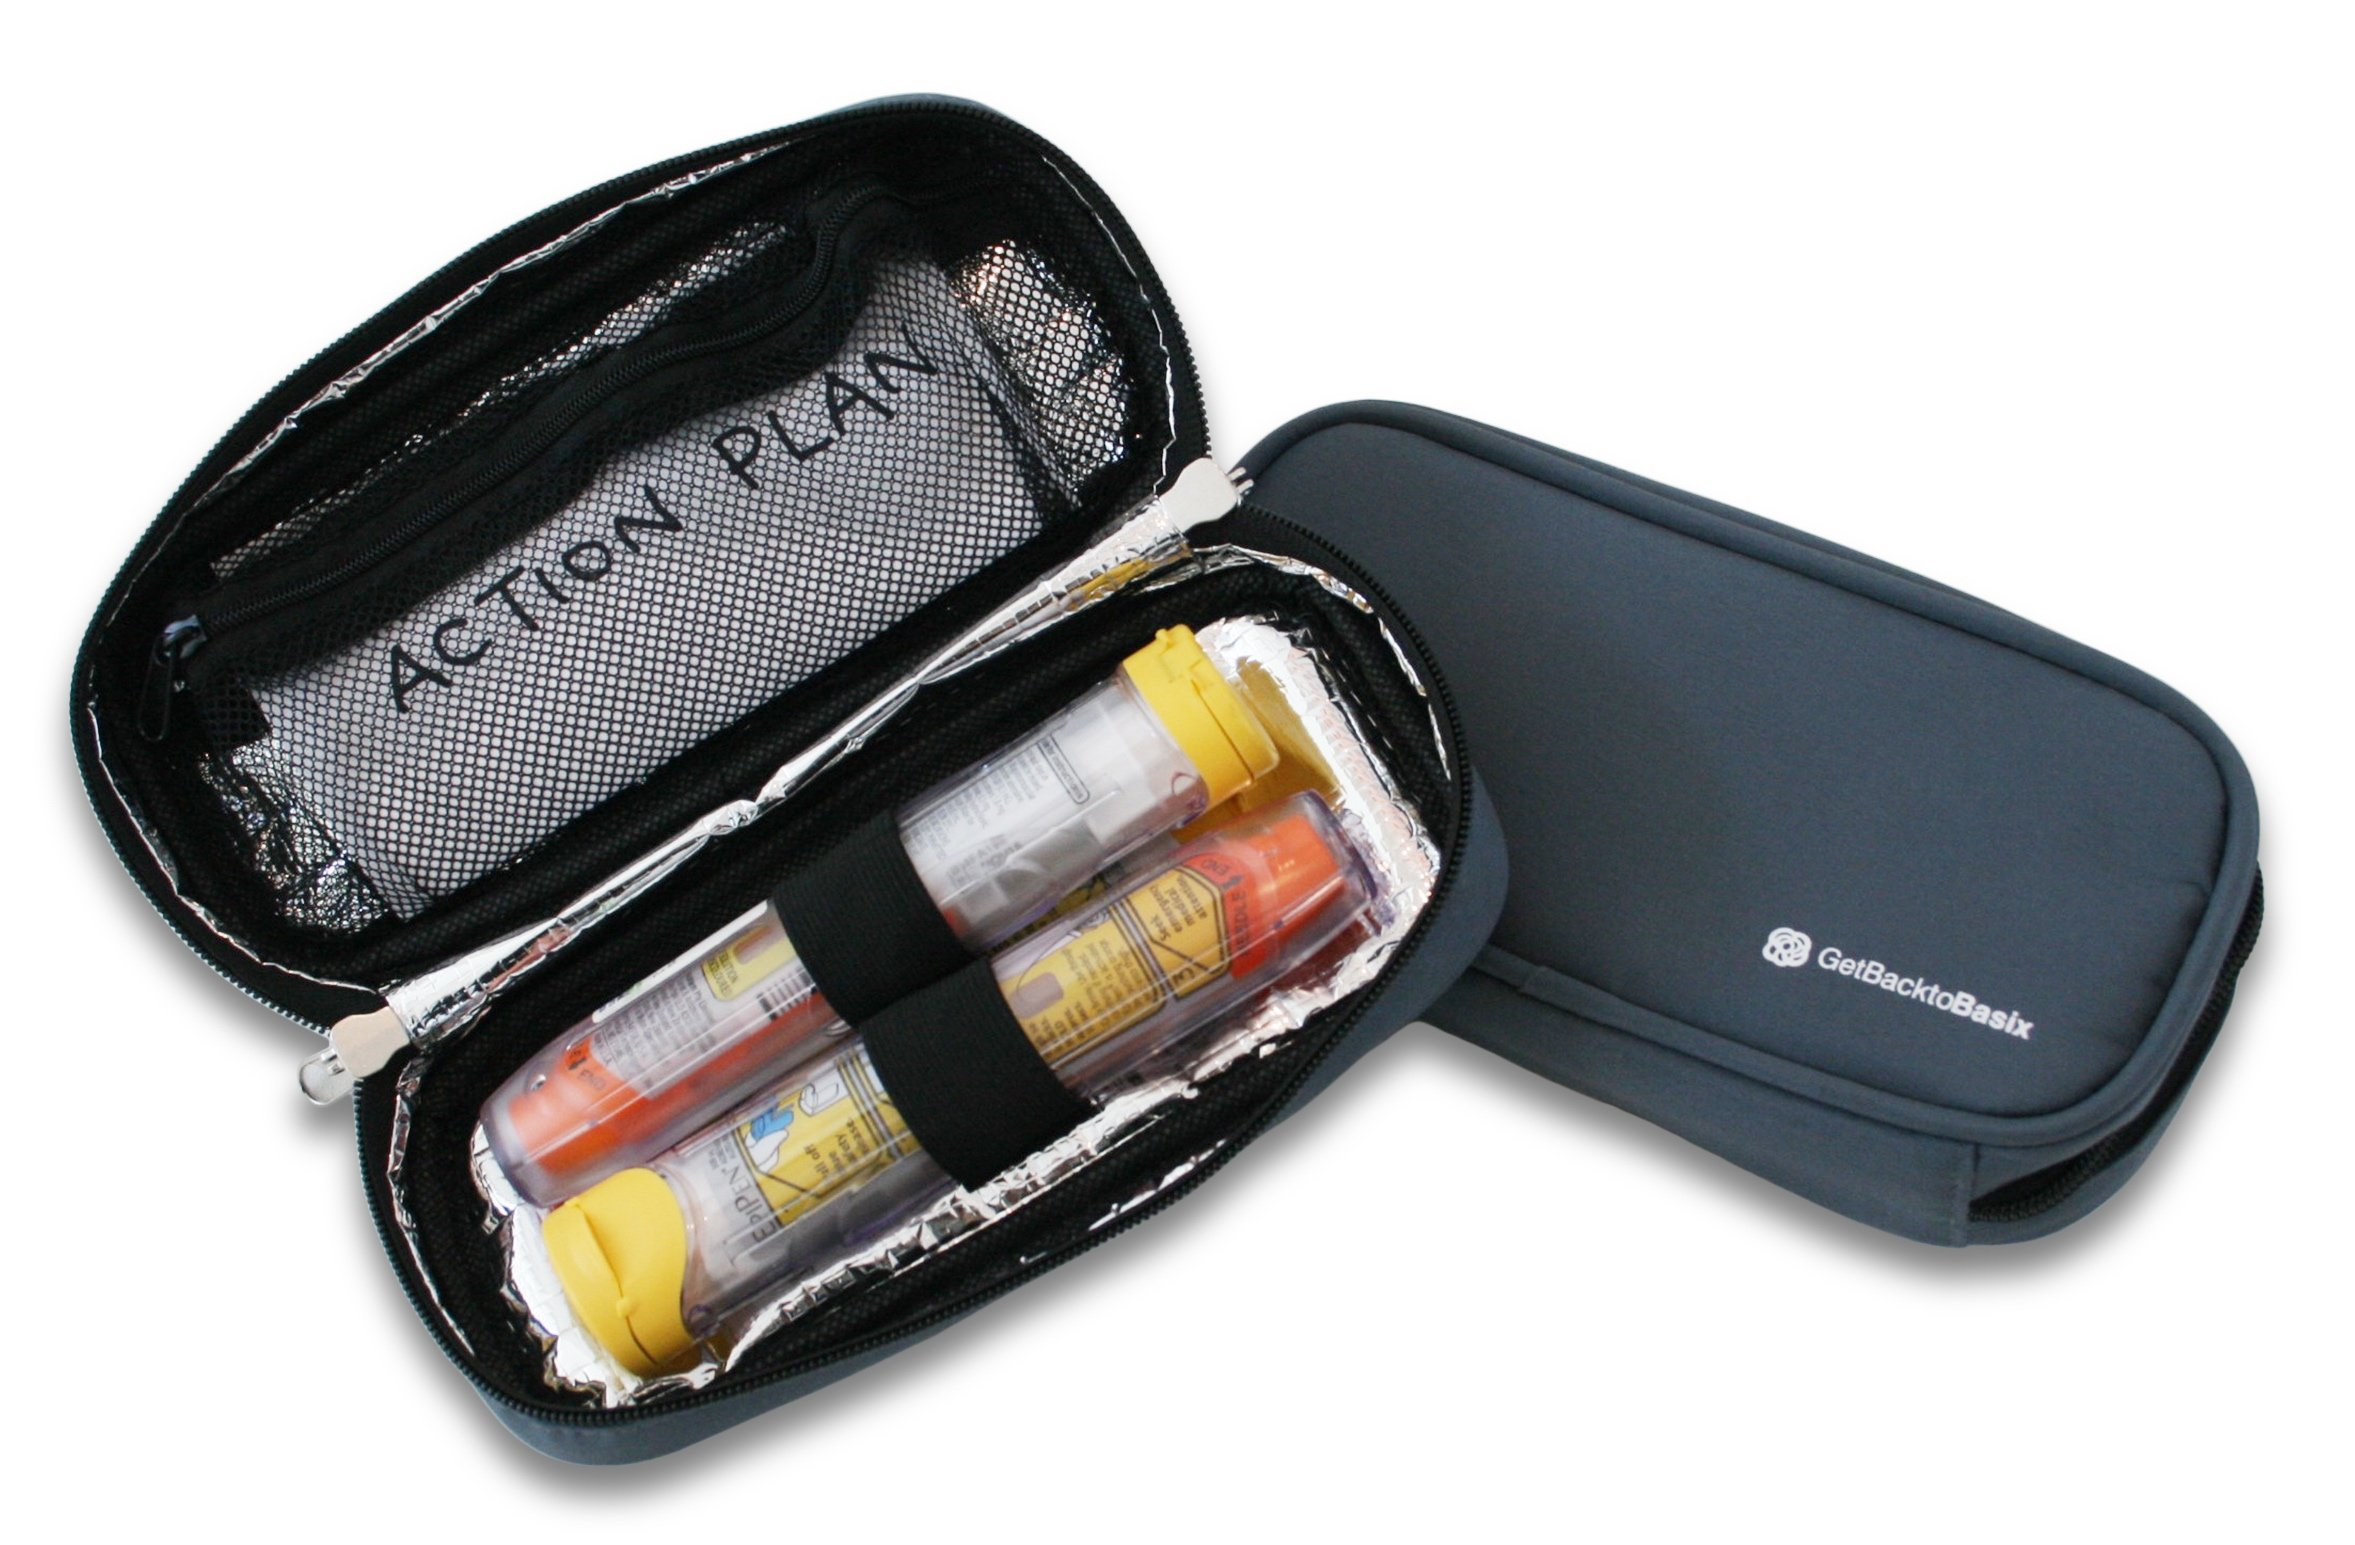 EPIPEN CASE Insulated - Medical Travel Organizer for Allergy Medications Like Epi pens, Inhalers, Asthma & More | Maintains Temperature of Medication (Medium - No Panels, Gray)